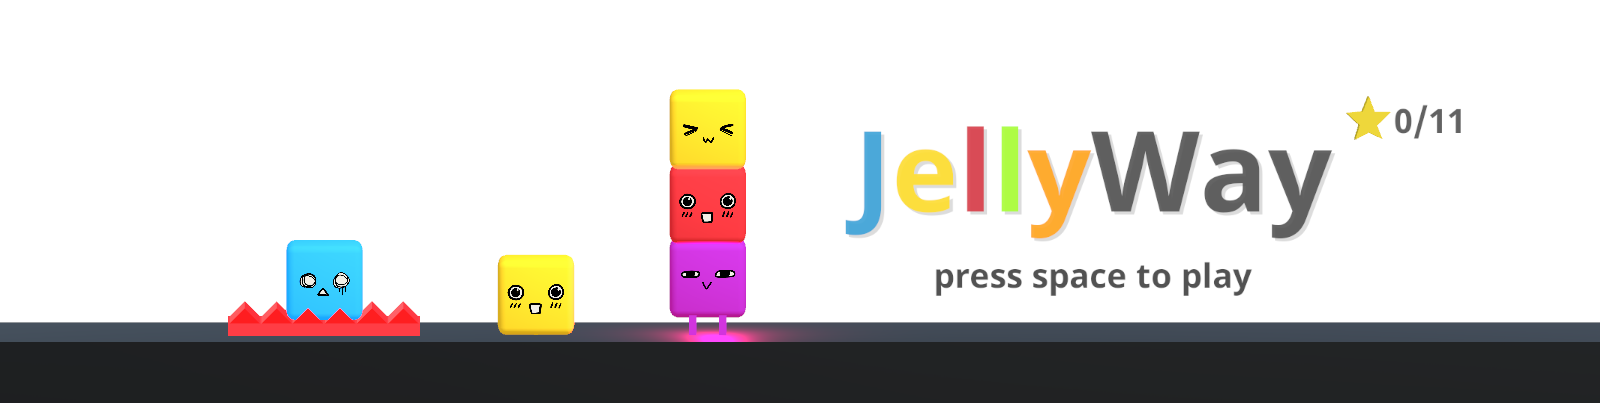 JellyWay